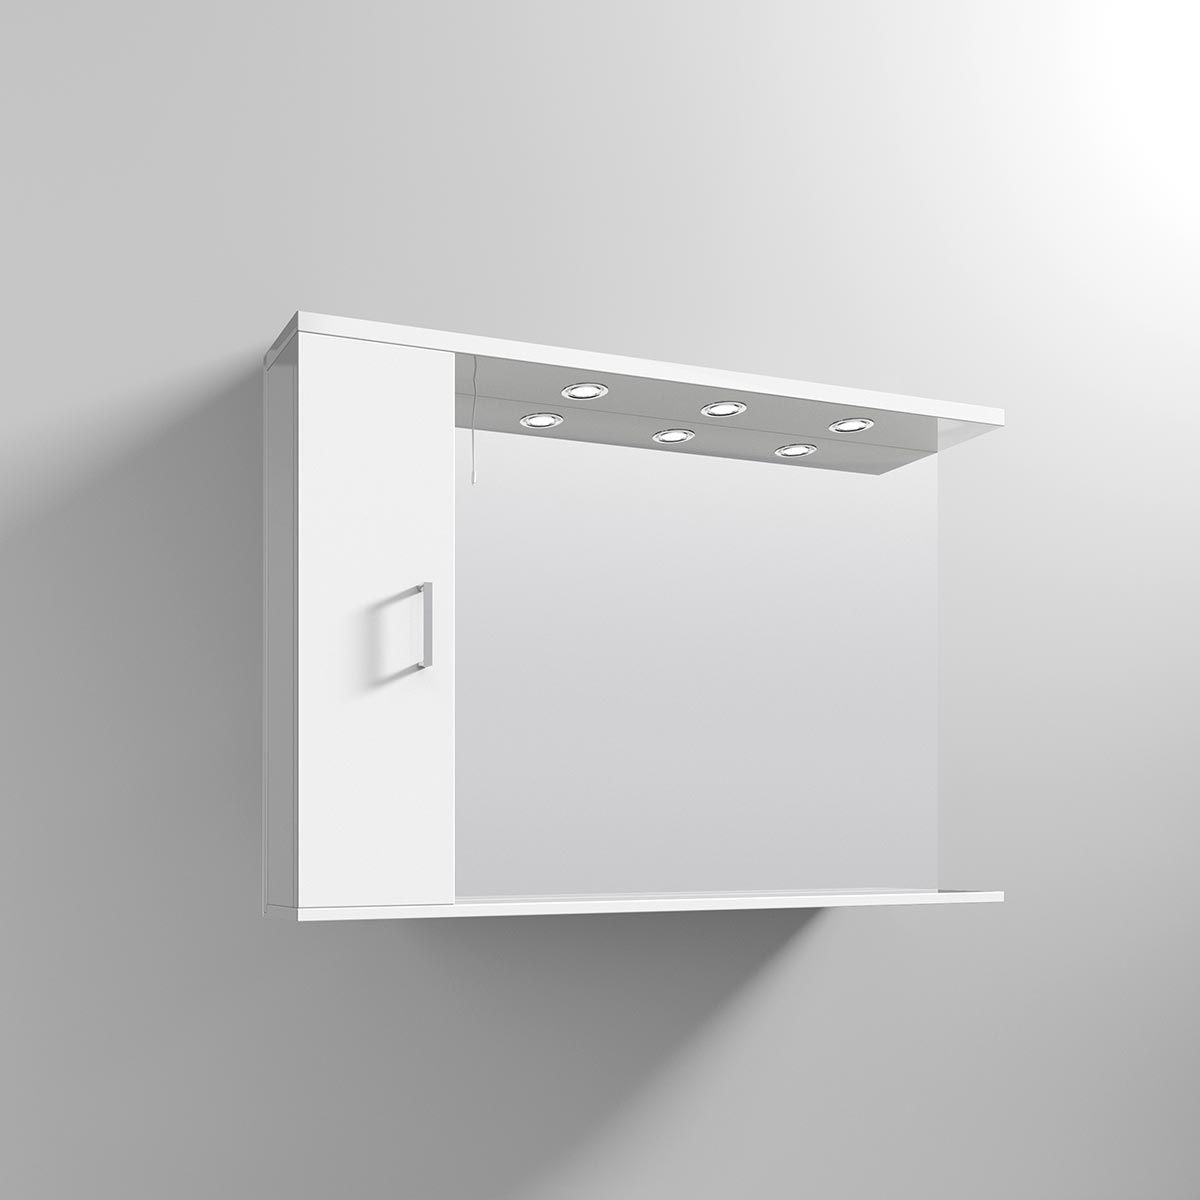 Nuie High Gloss White Bathroom Mirror Cabinet with Lights 1050mm